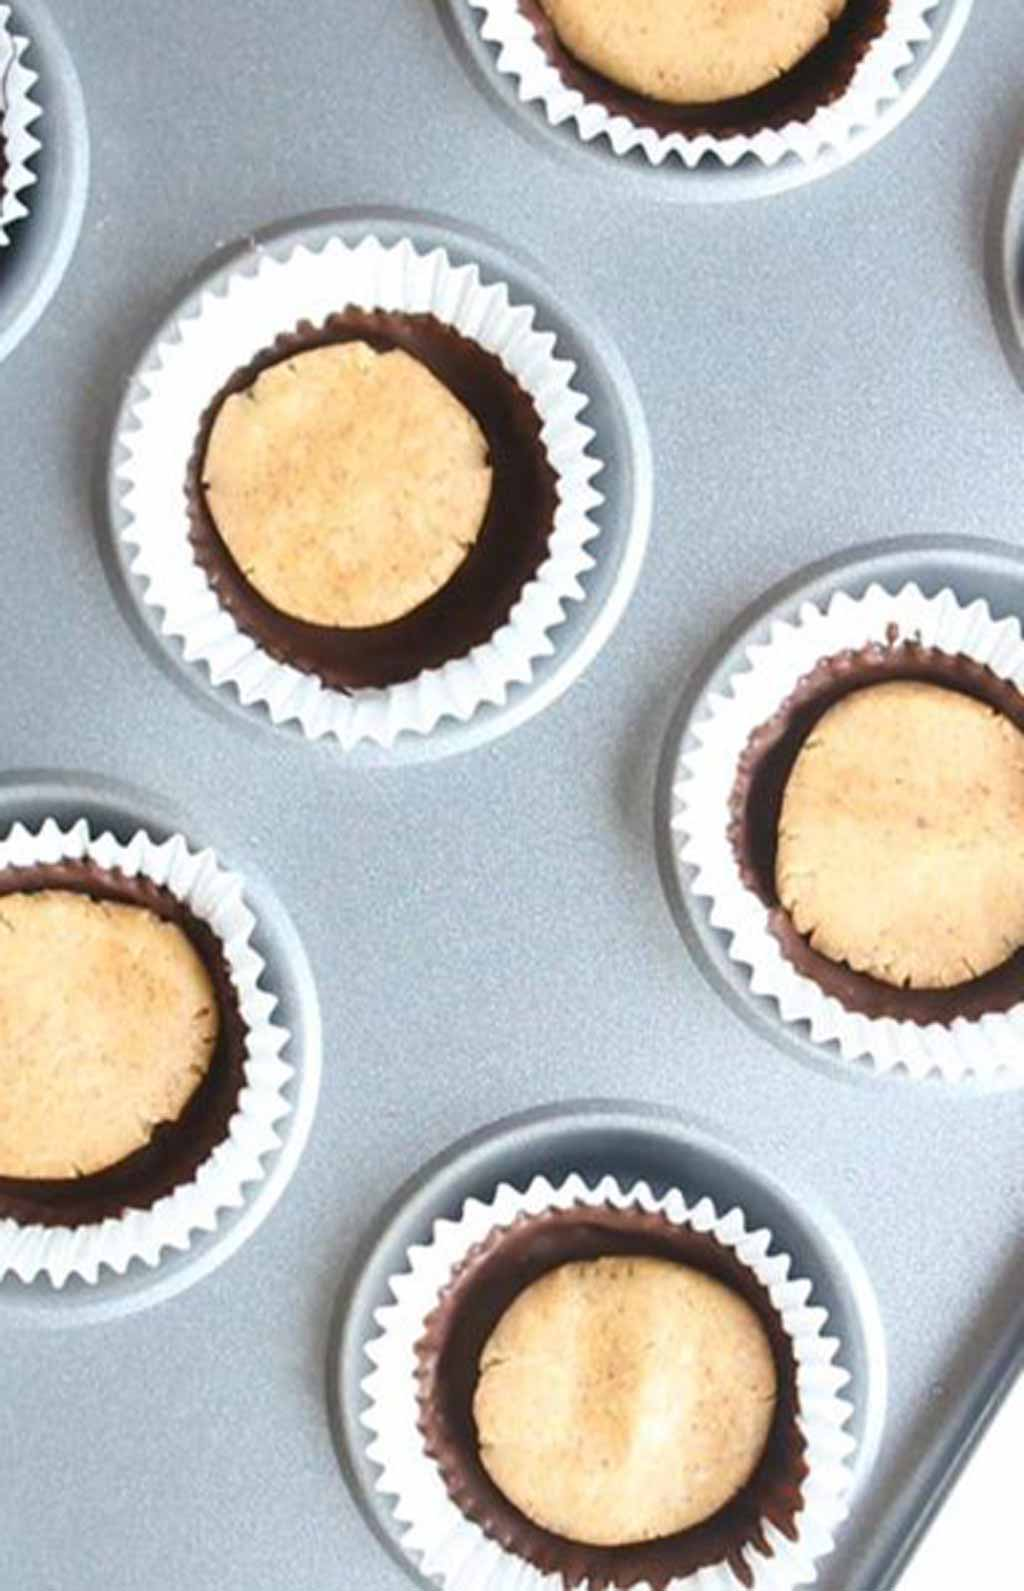 Chocolate Cups Filled With Peanut Butter Filling